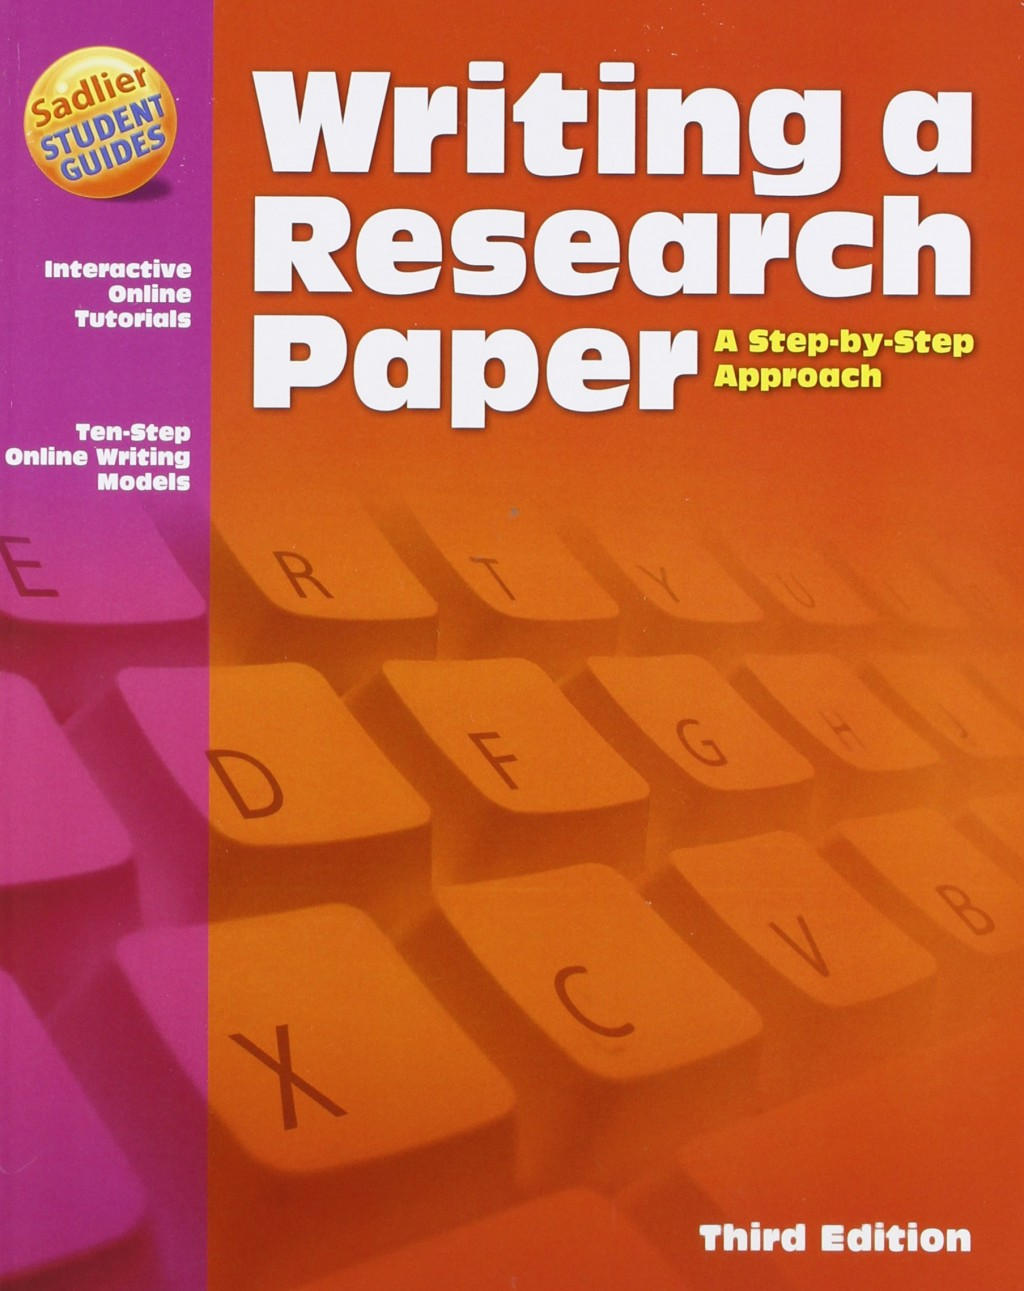 019 Research Paper Writing Papers Unique A Complete Guide 15th Edition Ebook 16th Pdf Free Large